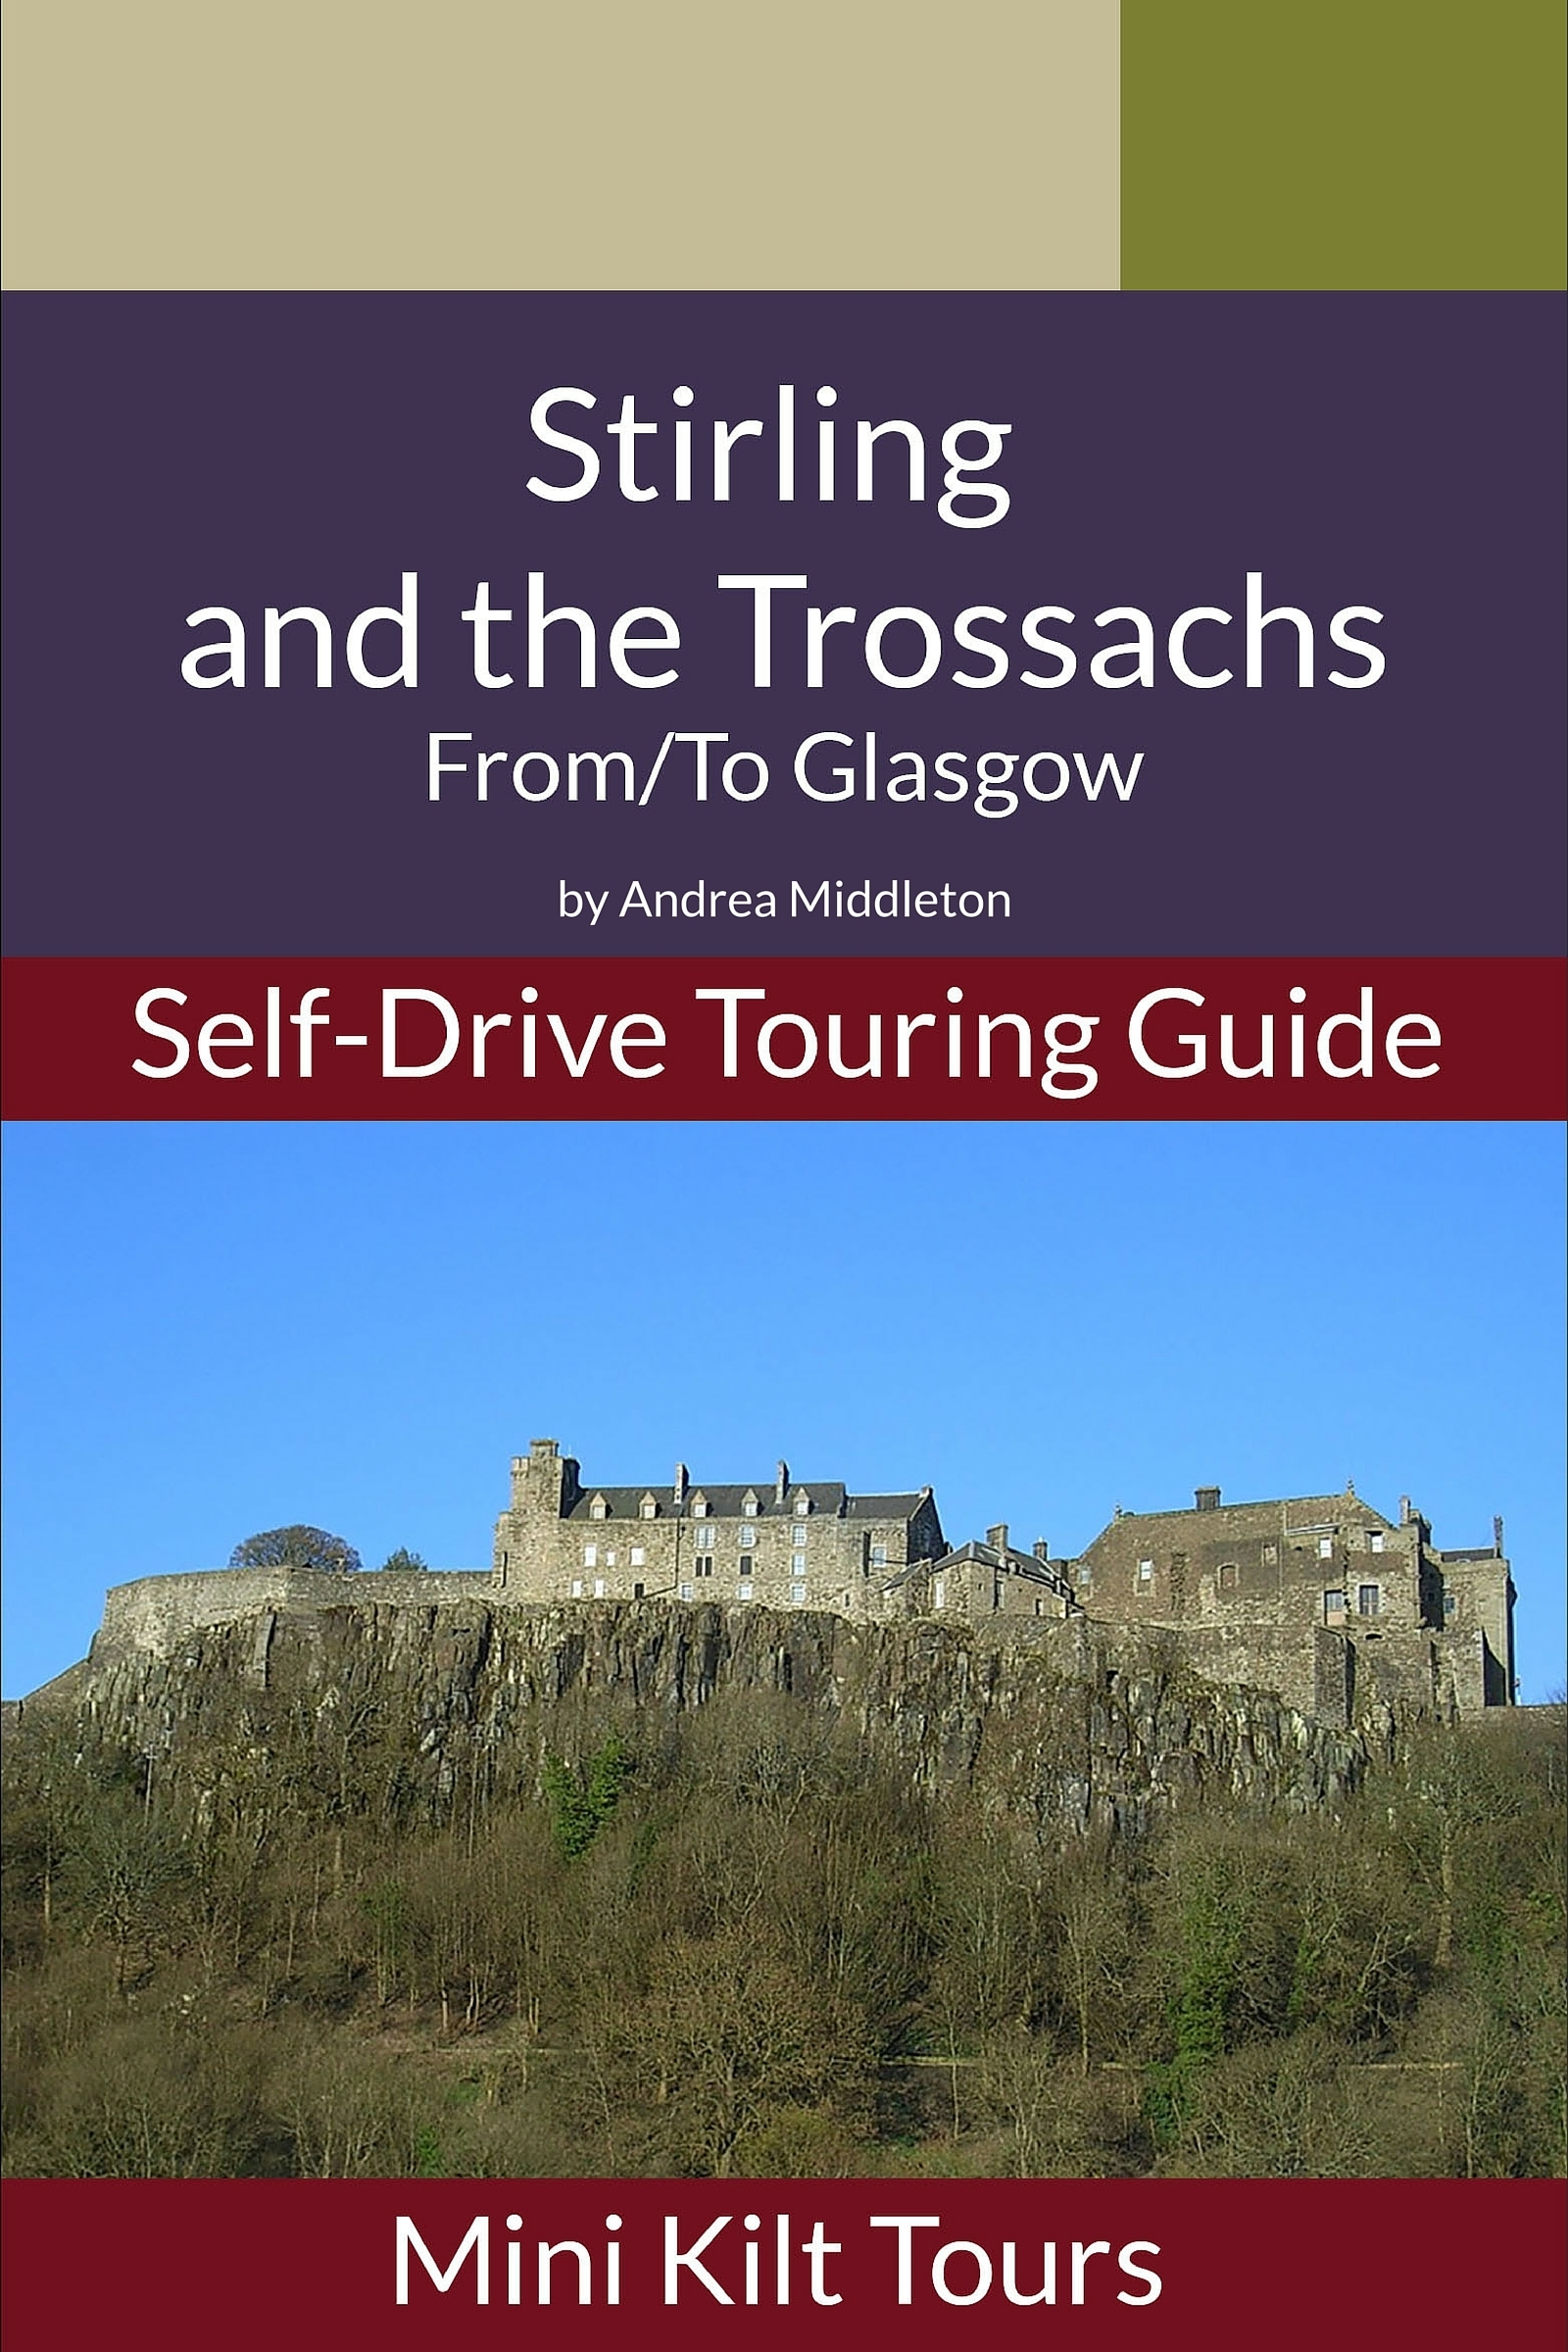 Mini Kilt Tours Self-Drive Touring Guide Stirling and Trossachs From/To Glasgow  by  Andrea Middleton